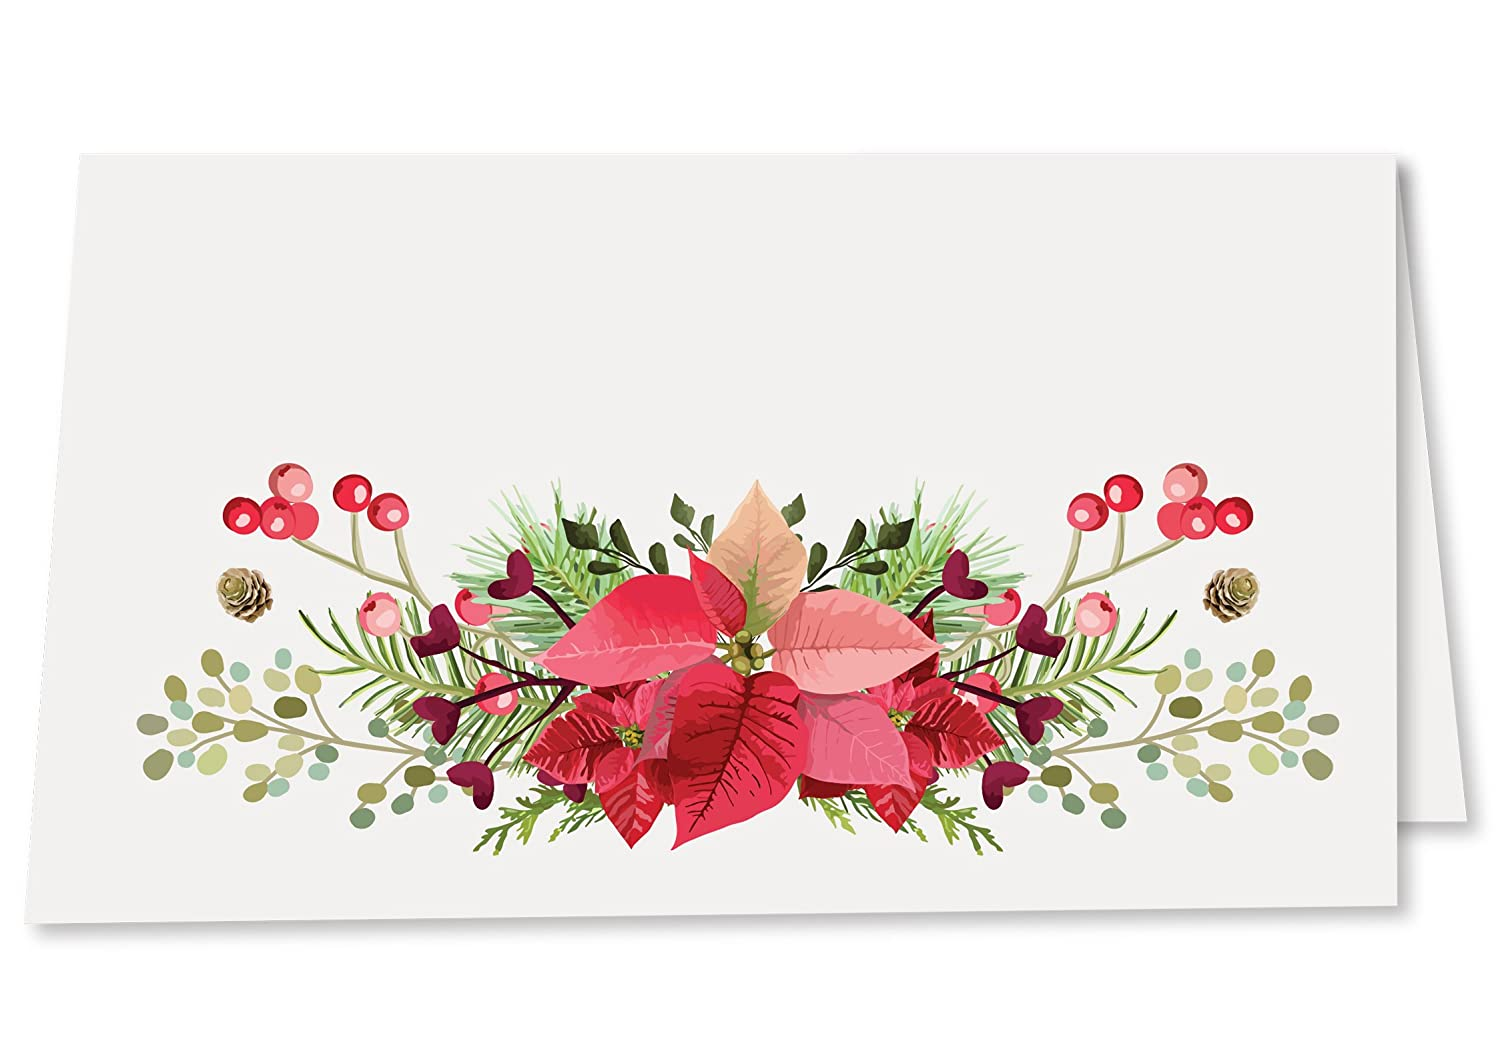 Koko Paper Co Rustic Christmas Place Cards with Poinsettia, Holly, Pine Cones and Winter Florals. Pack of 50 Tent Style Cards for Holiday Dinner, Brunch, Party, or Any Occasion. No Holder Necessary.